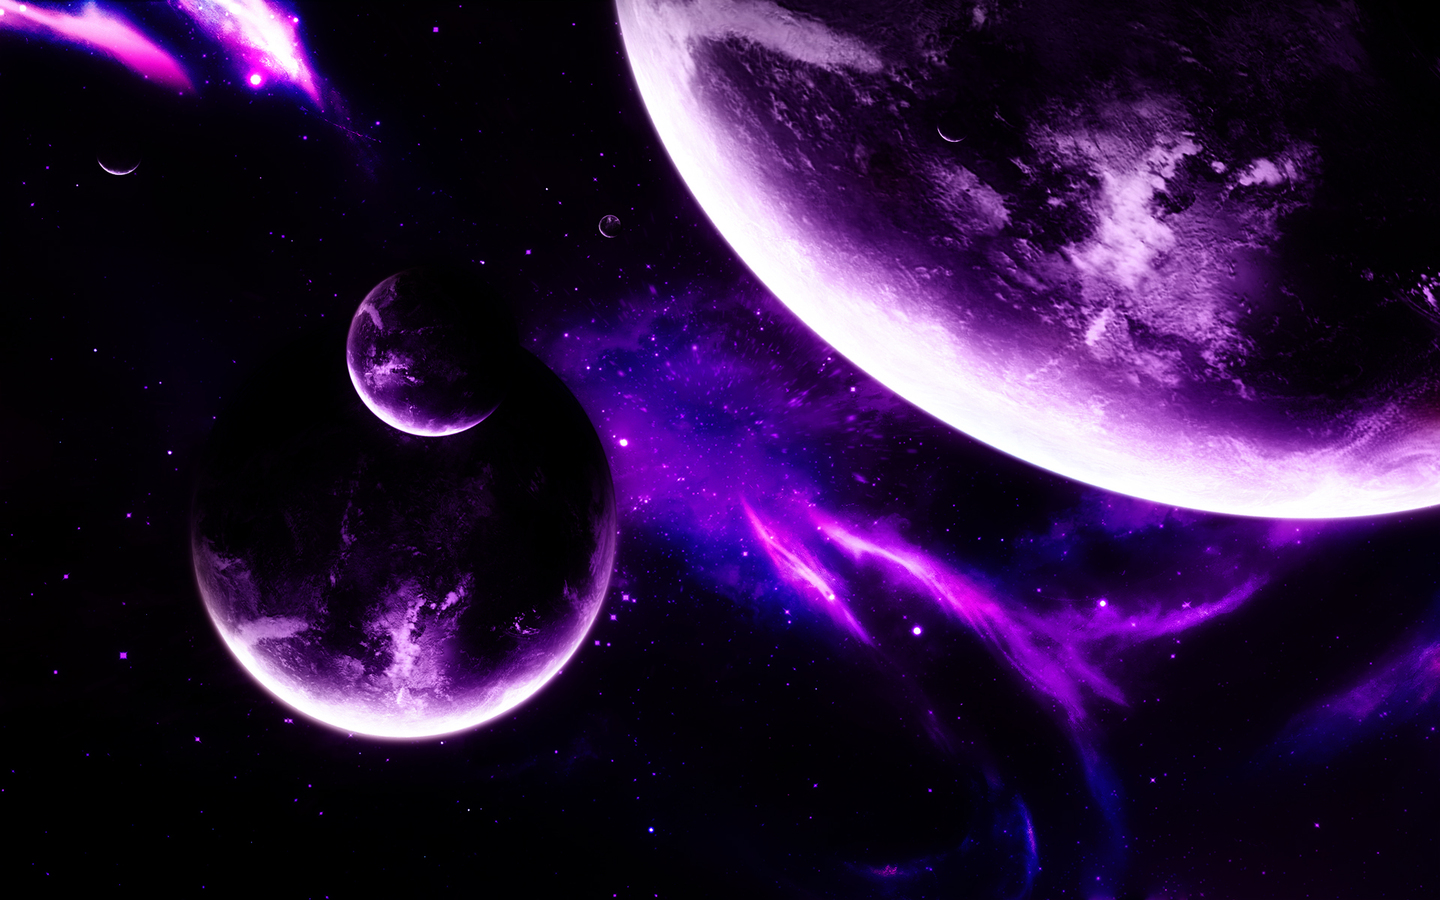 Space Wallpaper Purple Hi guys Hope everyone is having a nice week so far Mine has been